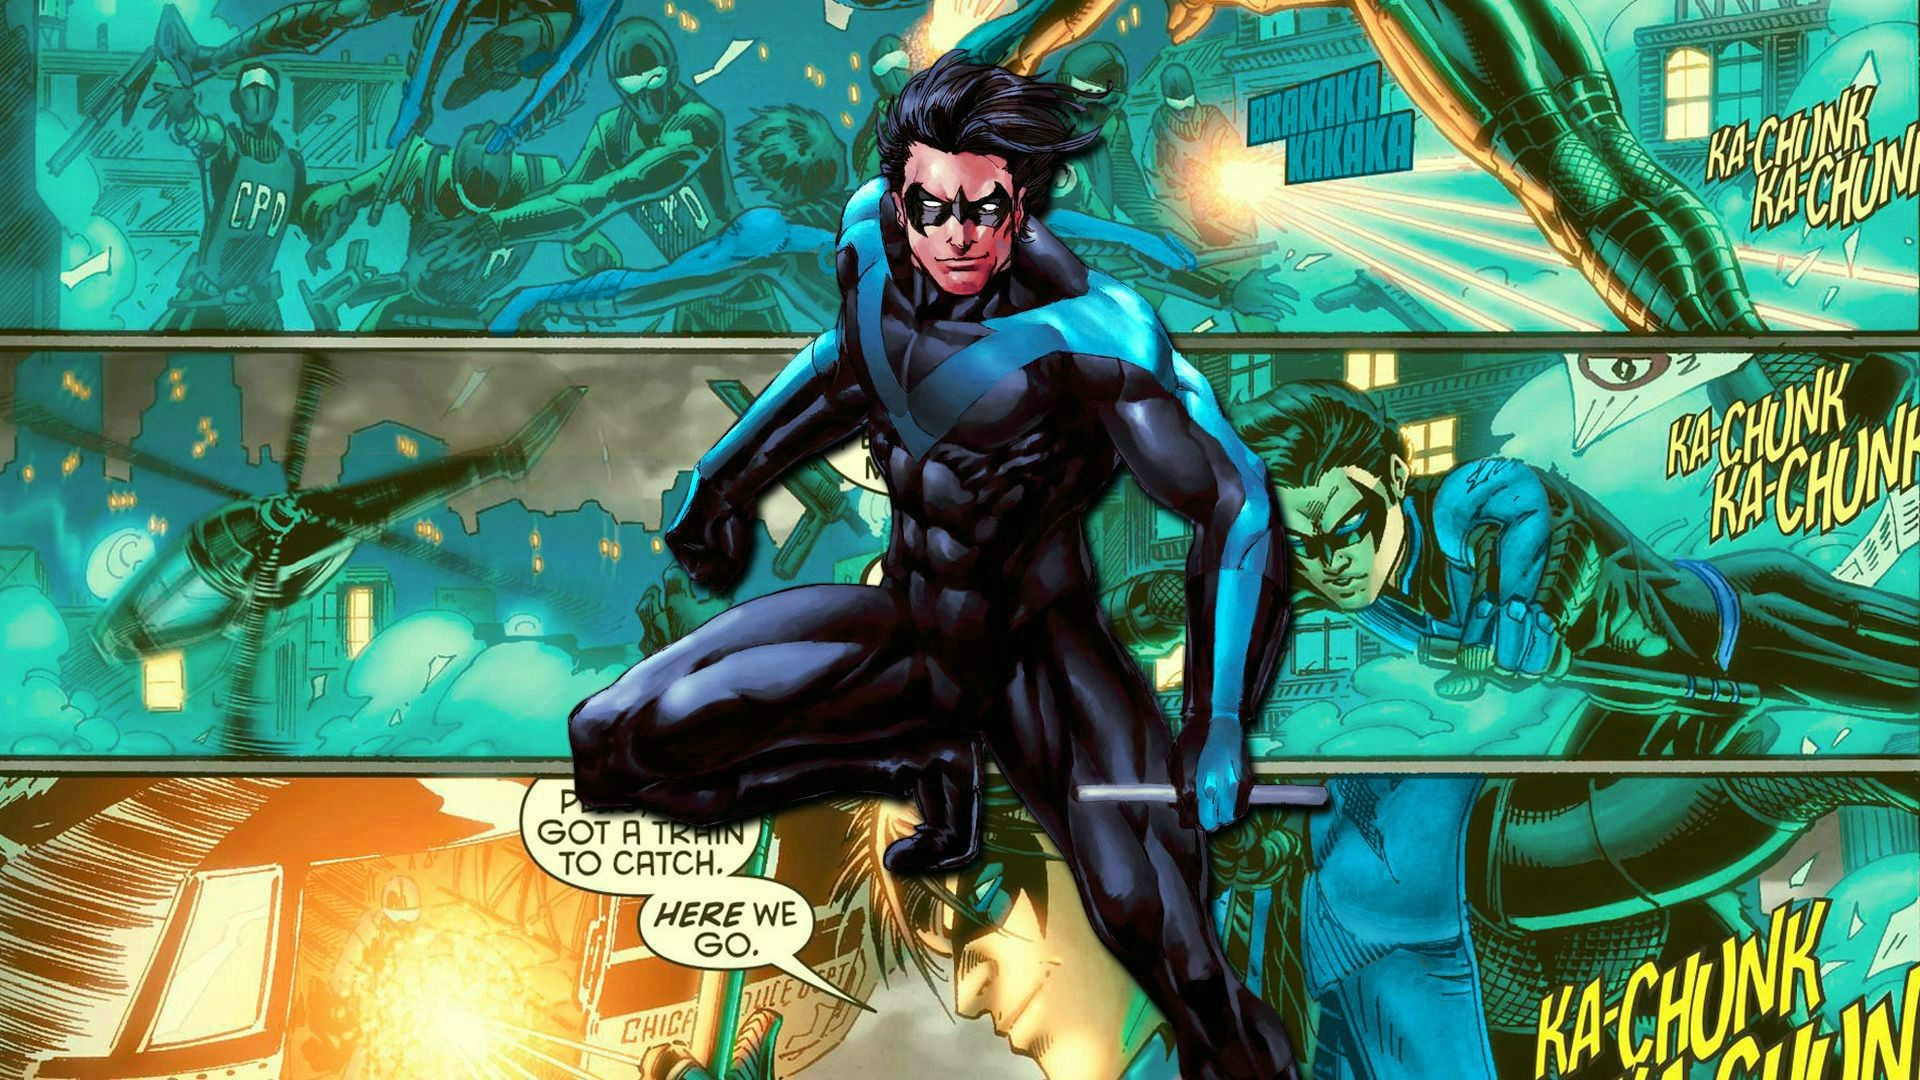 New Nightwing Wallpaper | HD Wallpapers | Pinterest | Wallpaper, Hd  wallpaper and deviantART